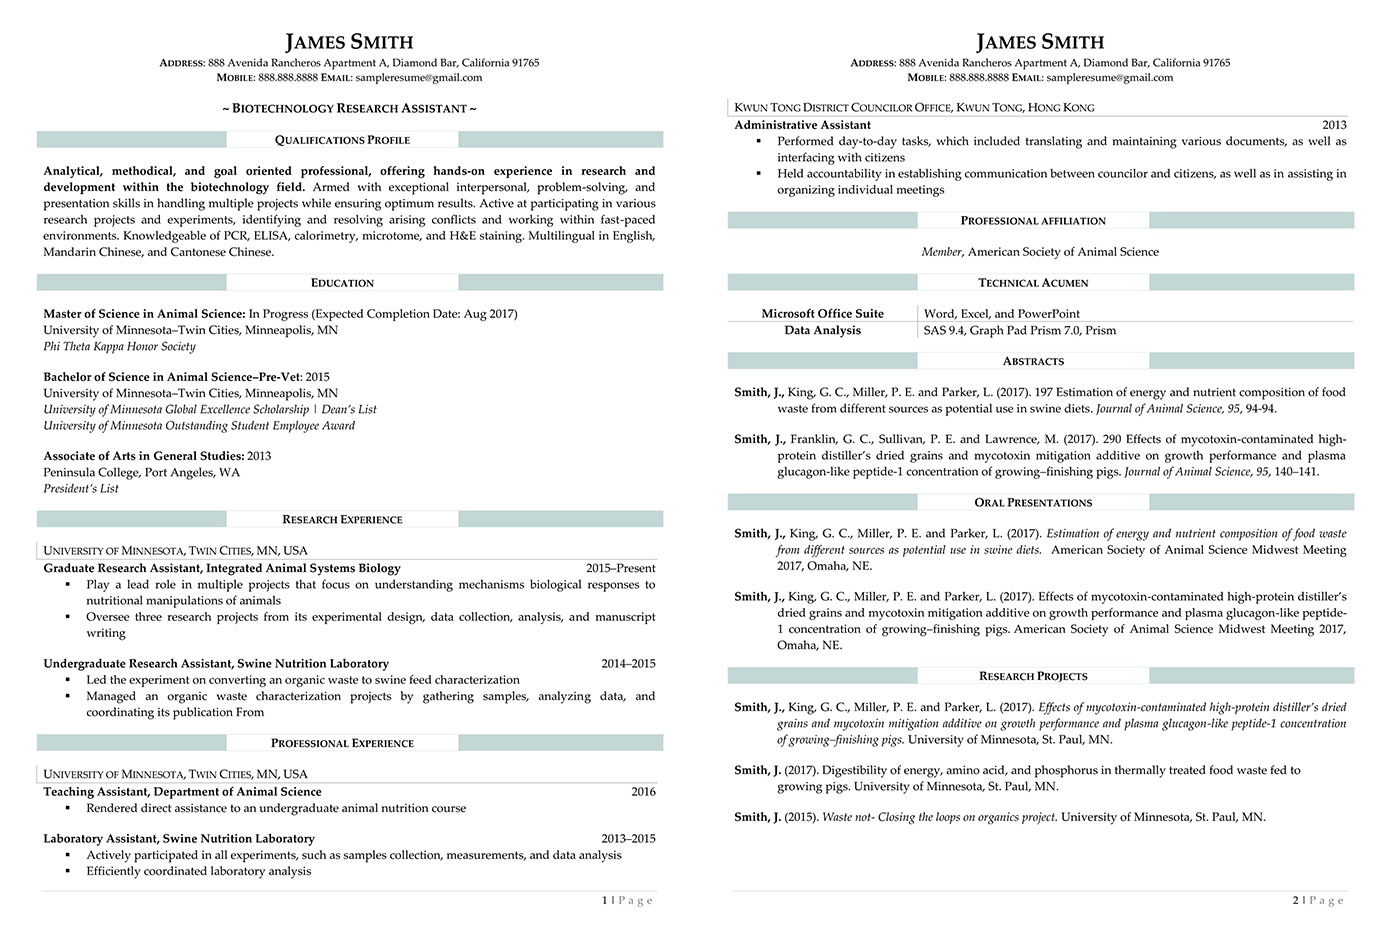 biotechnology research assistant resume - Research Assistant Sample Resume